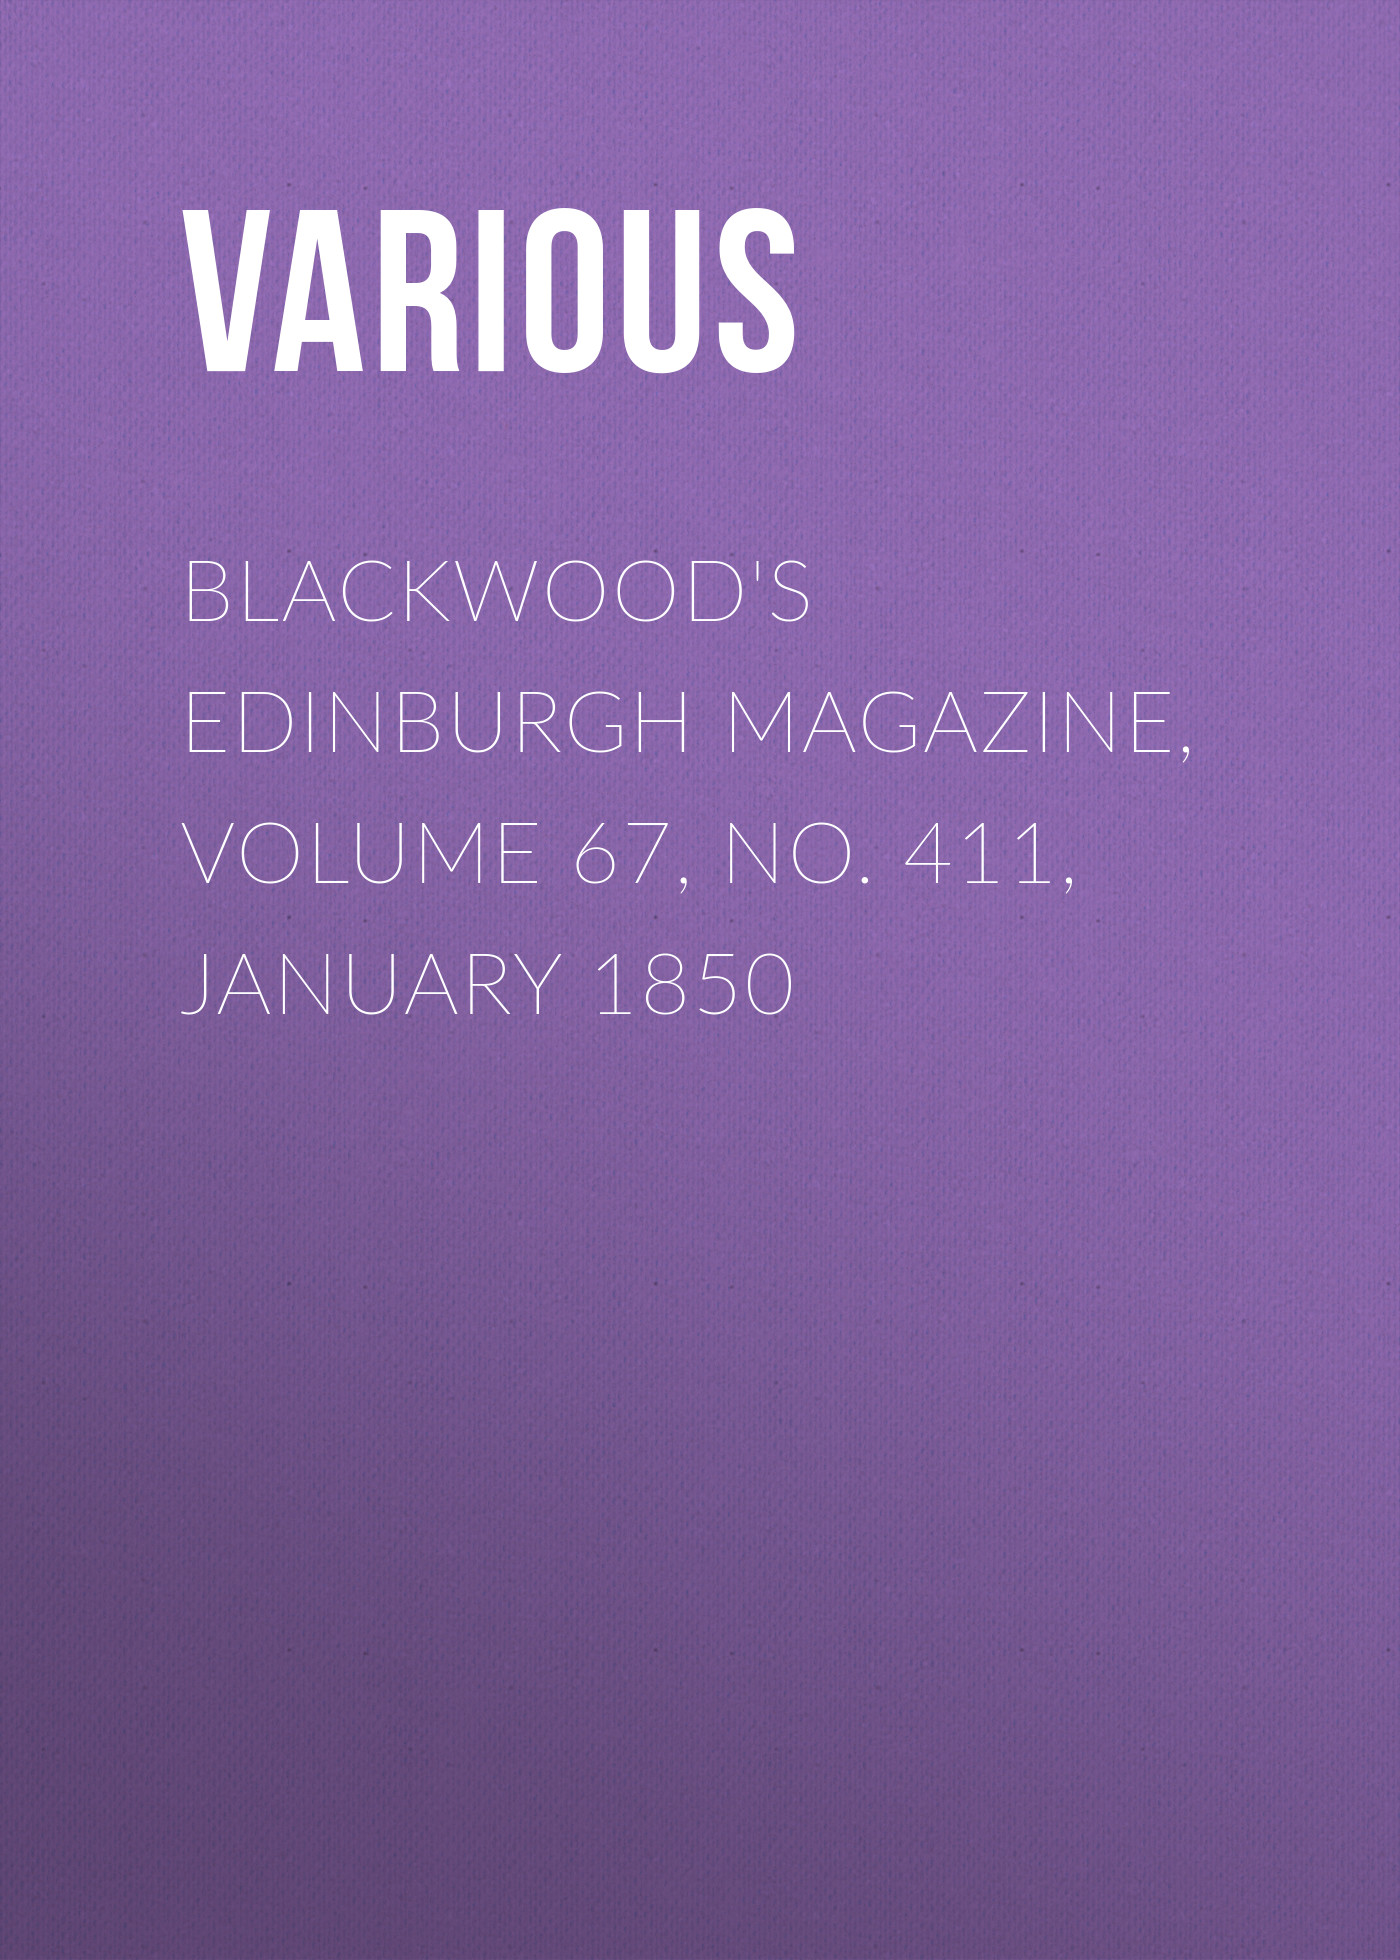 Various Blackwood's Edinburgh Magazine, Volume 67, No. 411, January 1850 various blackwood s edinburgh magazine volume 67 no 411 january 1850